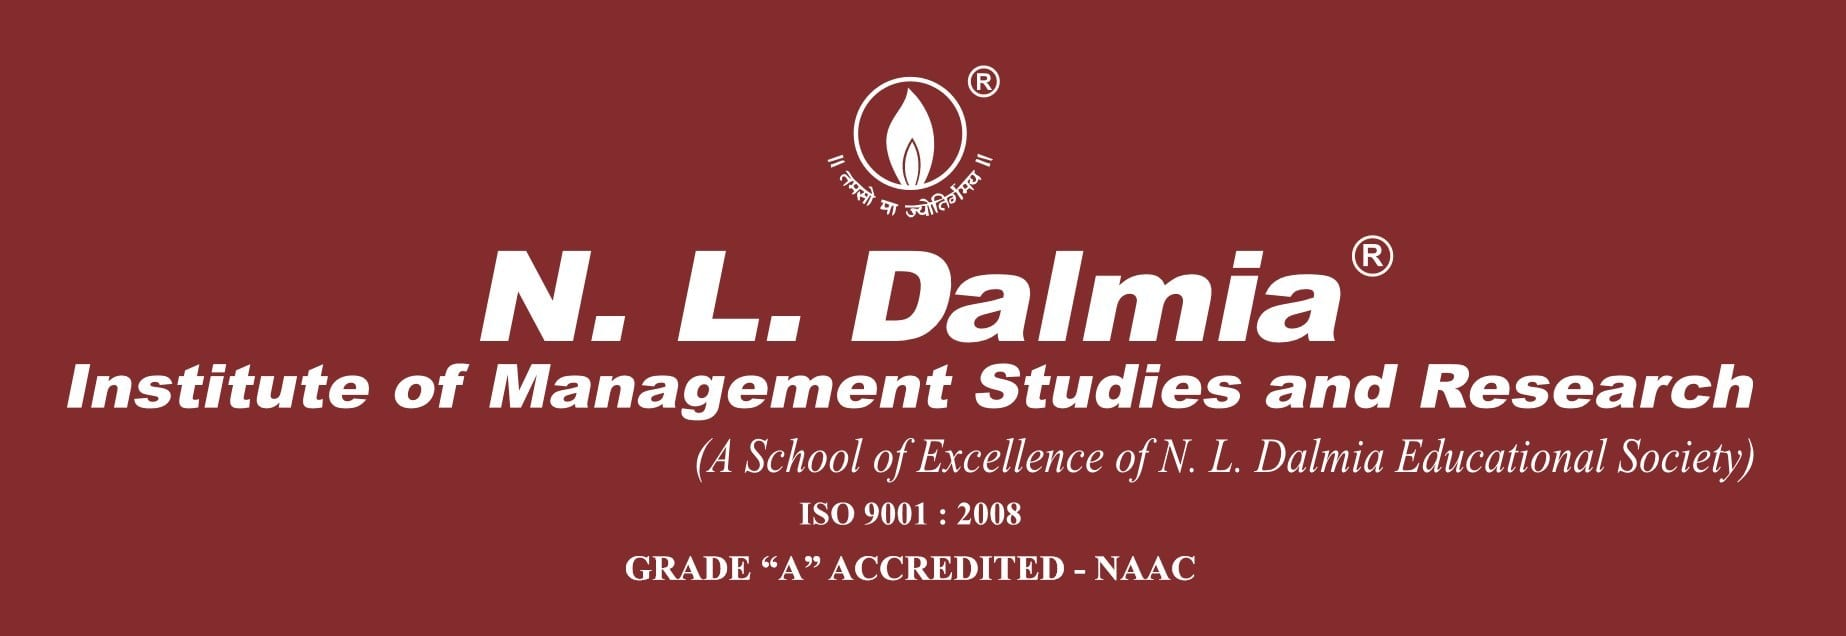 N L Dalmia partners up with the Global Analytics Leader - SAS Institute Pvt. Ltd. for Post Graduate Programs in Big Data and Advanced Analytics